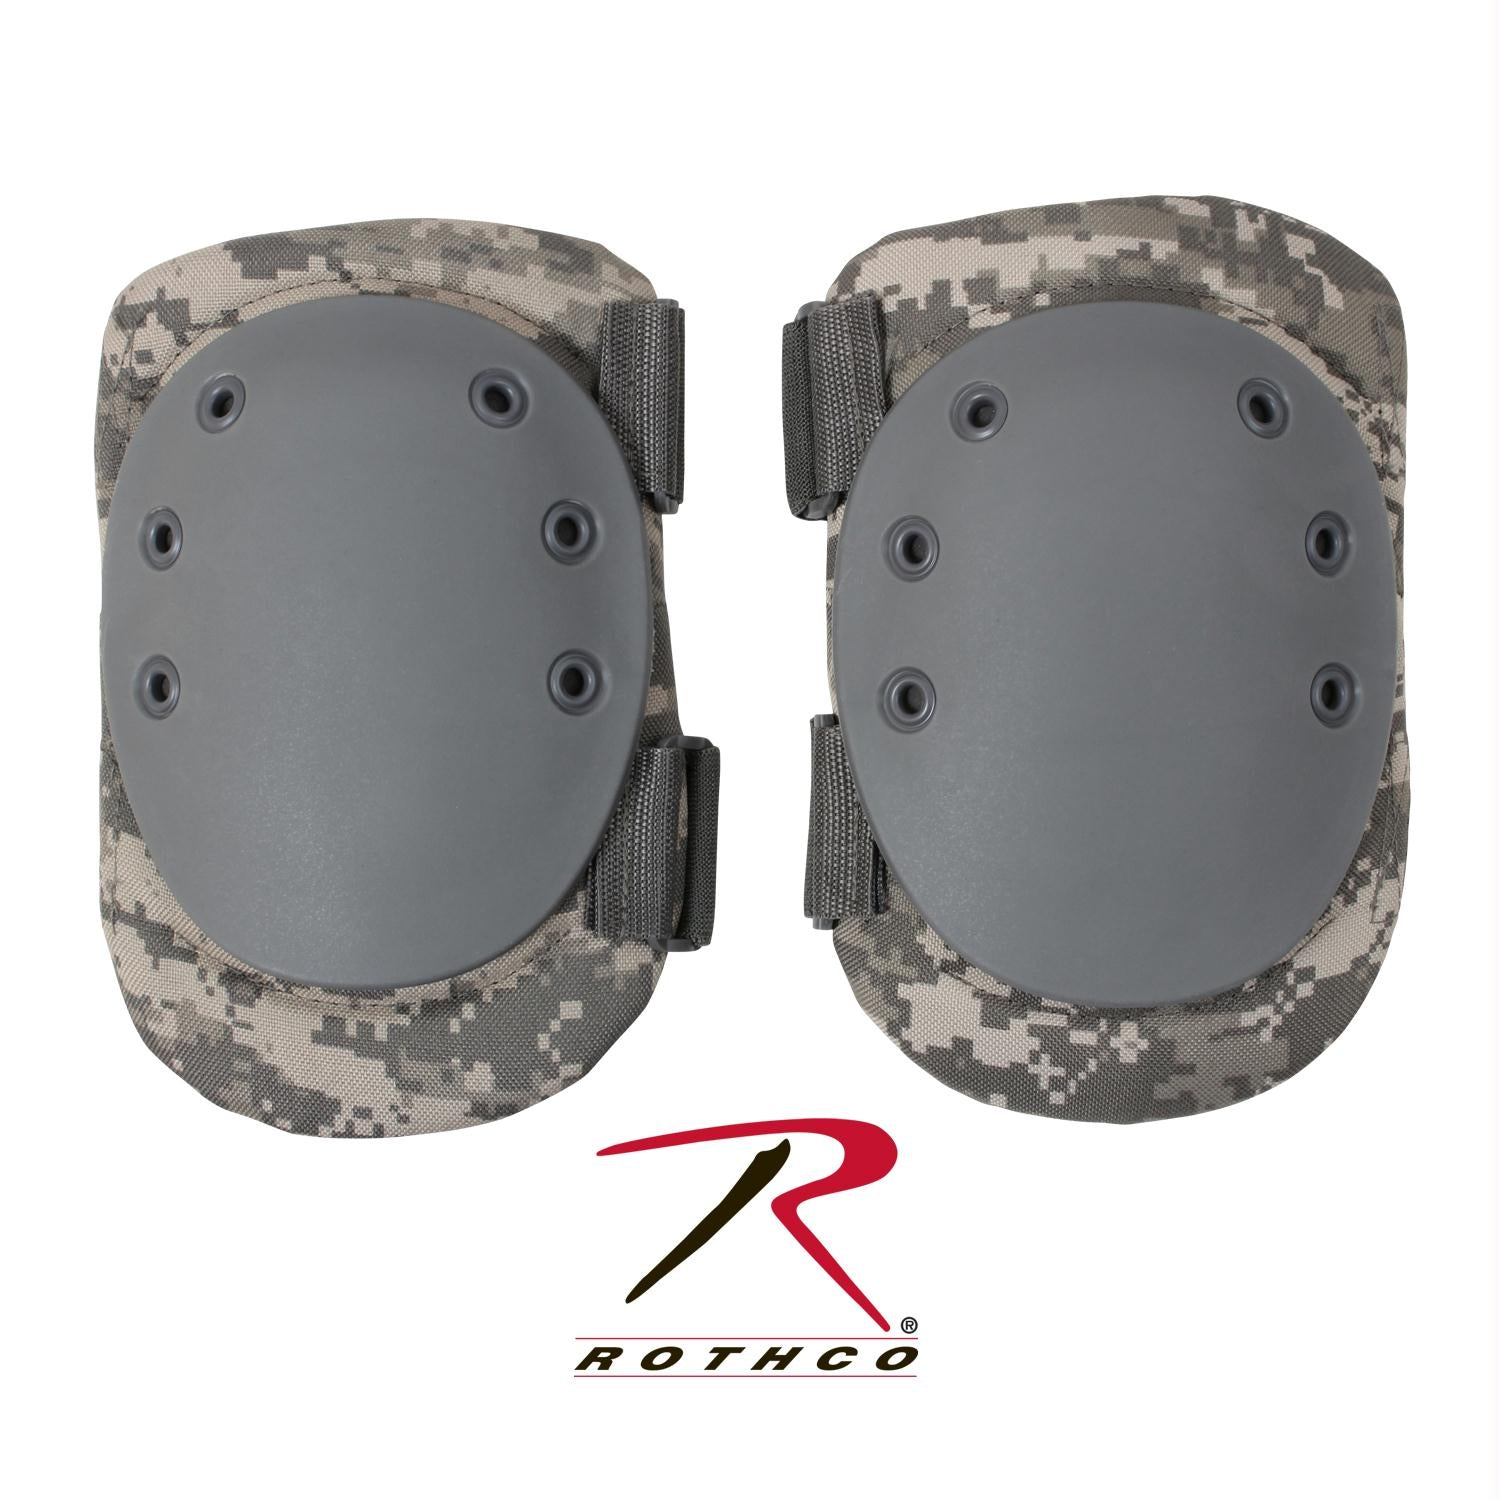 Rothco Tactical Protective Gear Knee Pads